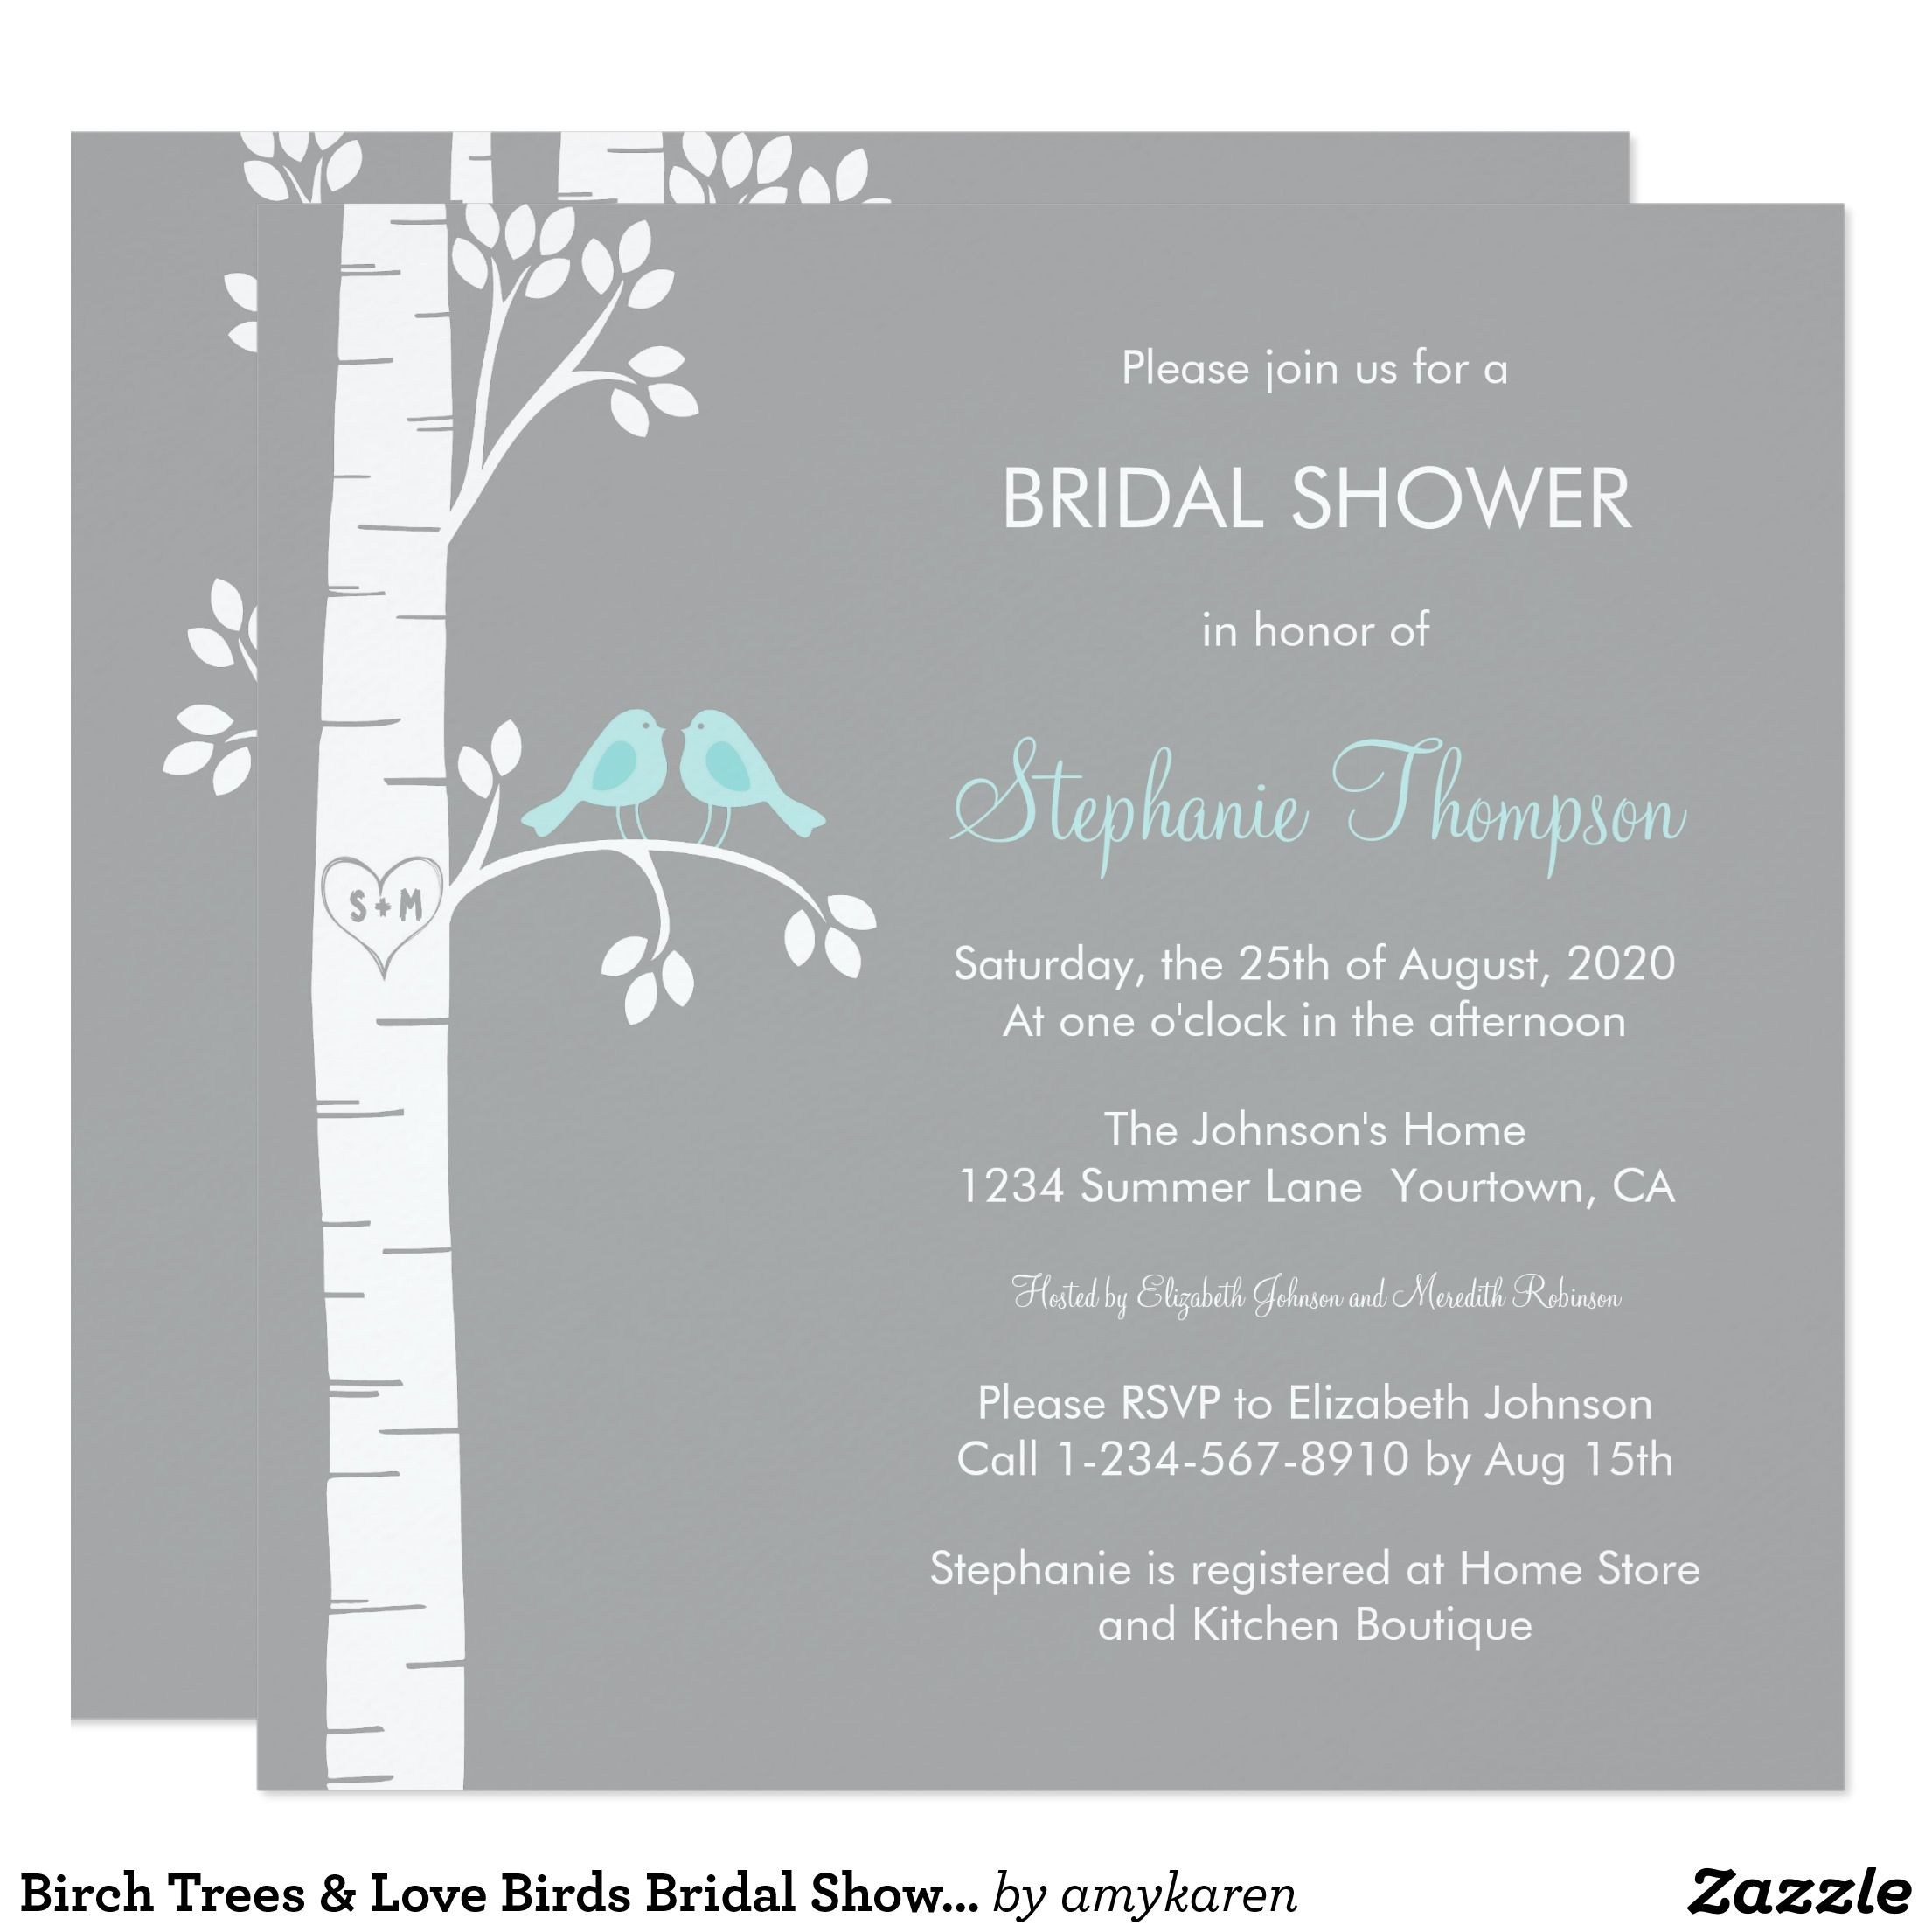 bridal winsome outlook templates extraordinary of for shower with peacock cards your invitation an invitations resulting